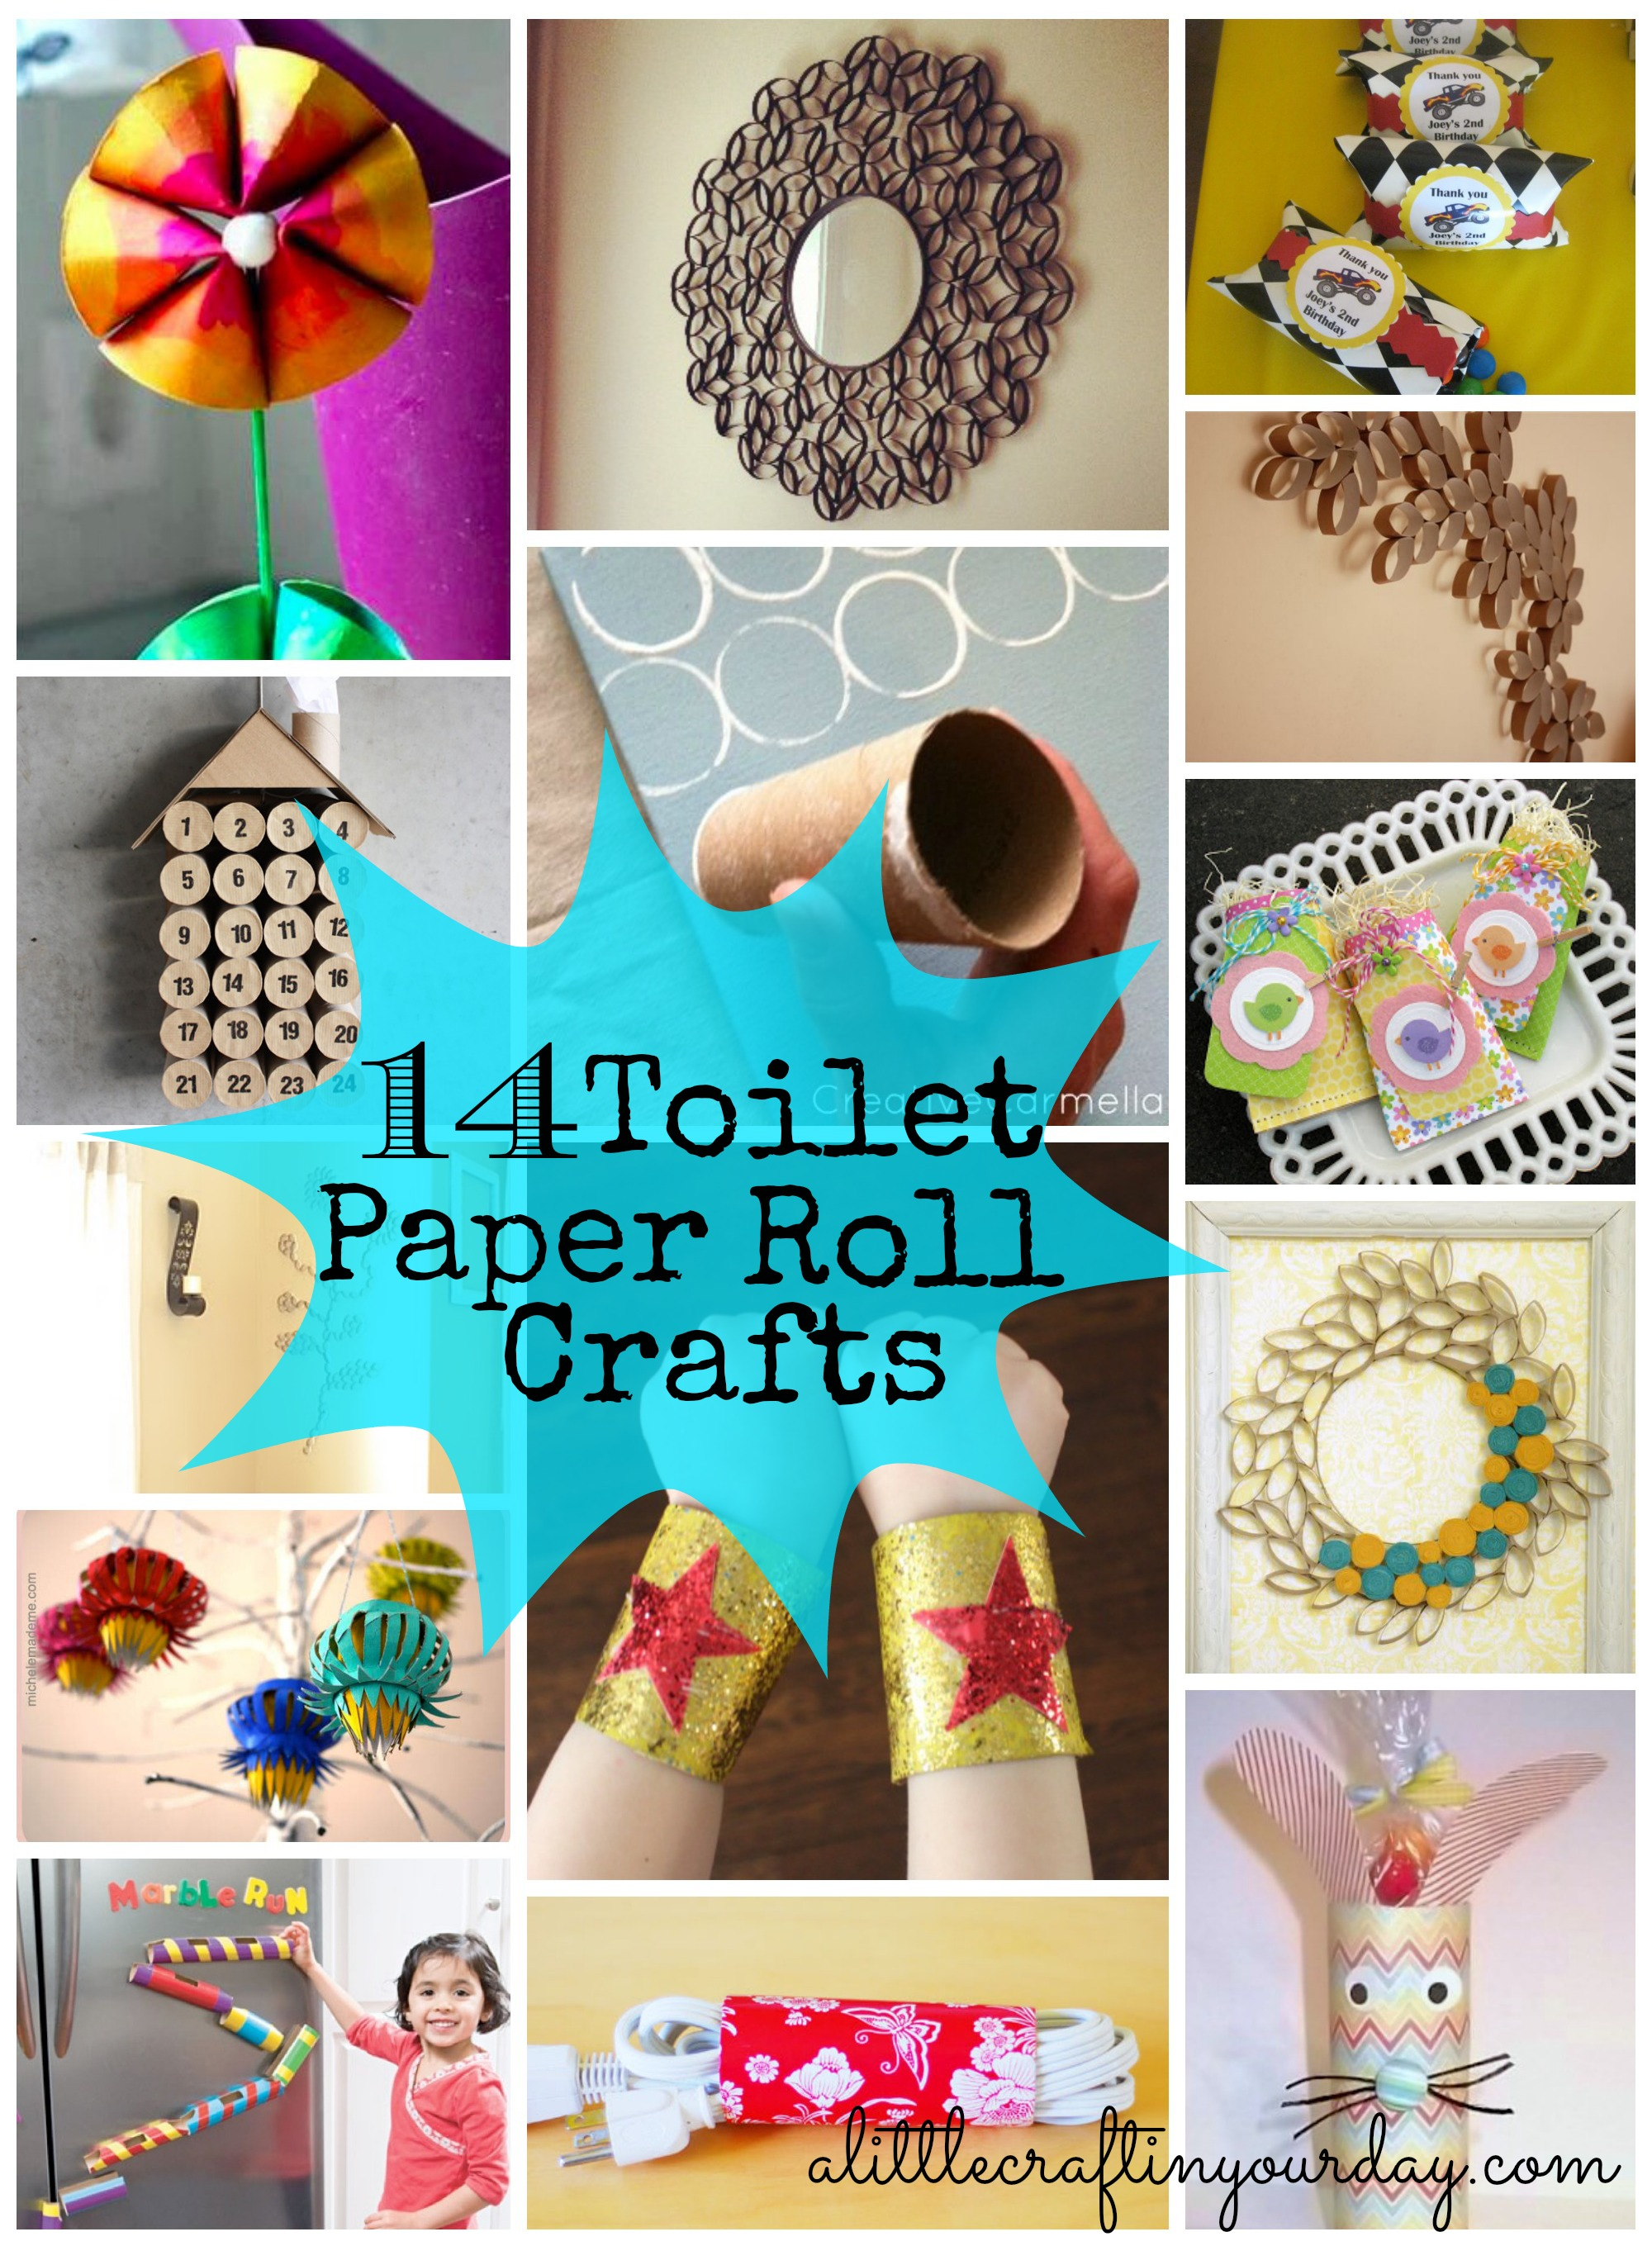 14_Toilet_Paper_Roll_Crafts